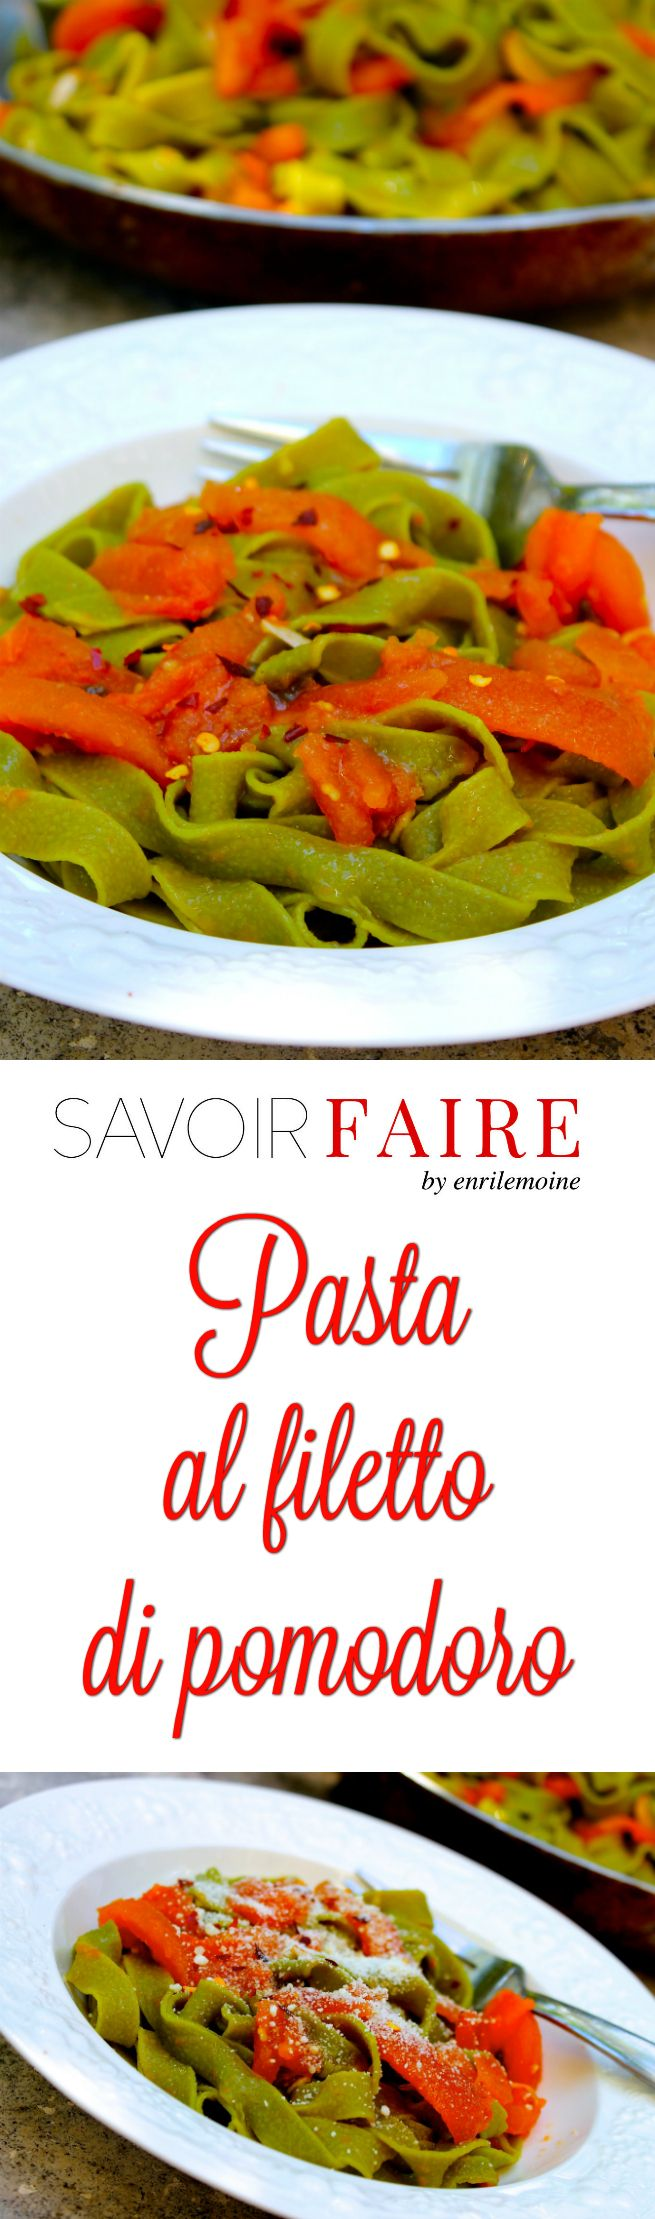 When less is more, this pasta al filetto di pomodoro (with tomato and garlic filetes and basil), proves that the simpler the better. Make dinner in less than 20 minutes by clicking and getting the recipe of this classic of the Italian cuisine. via @enrilemoine